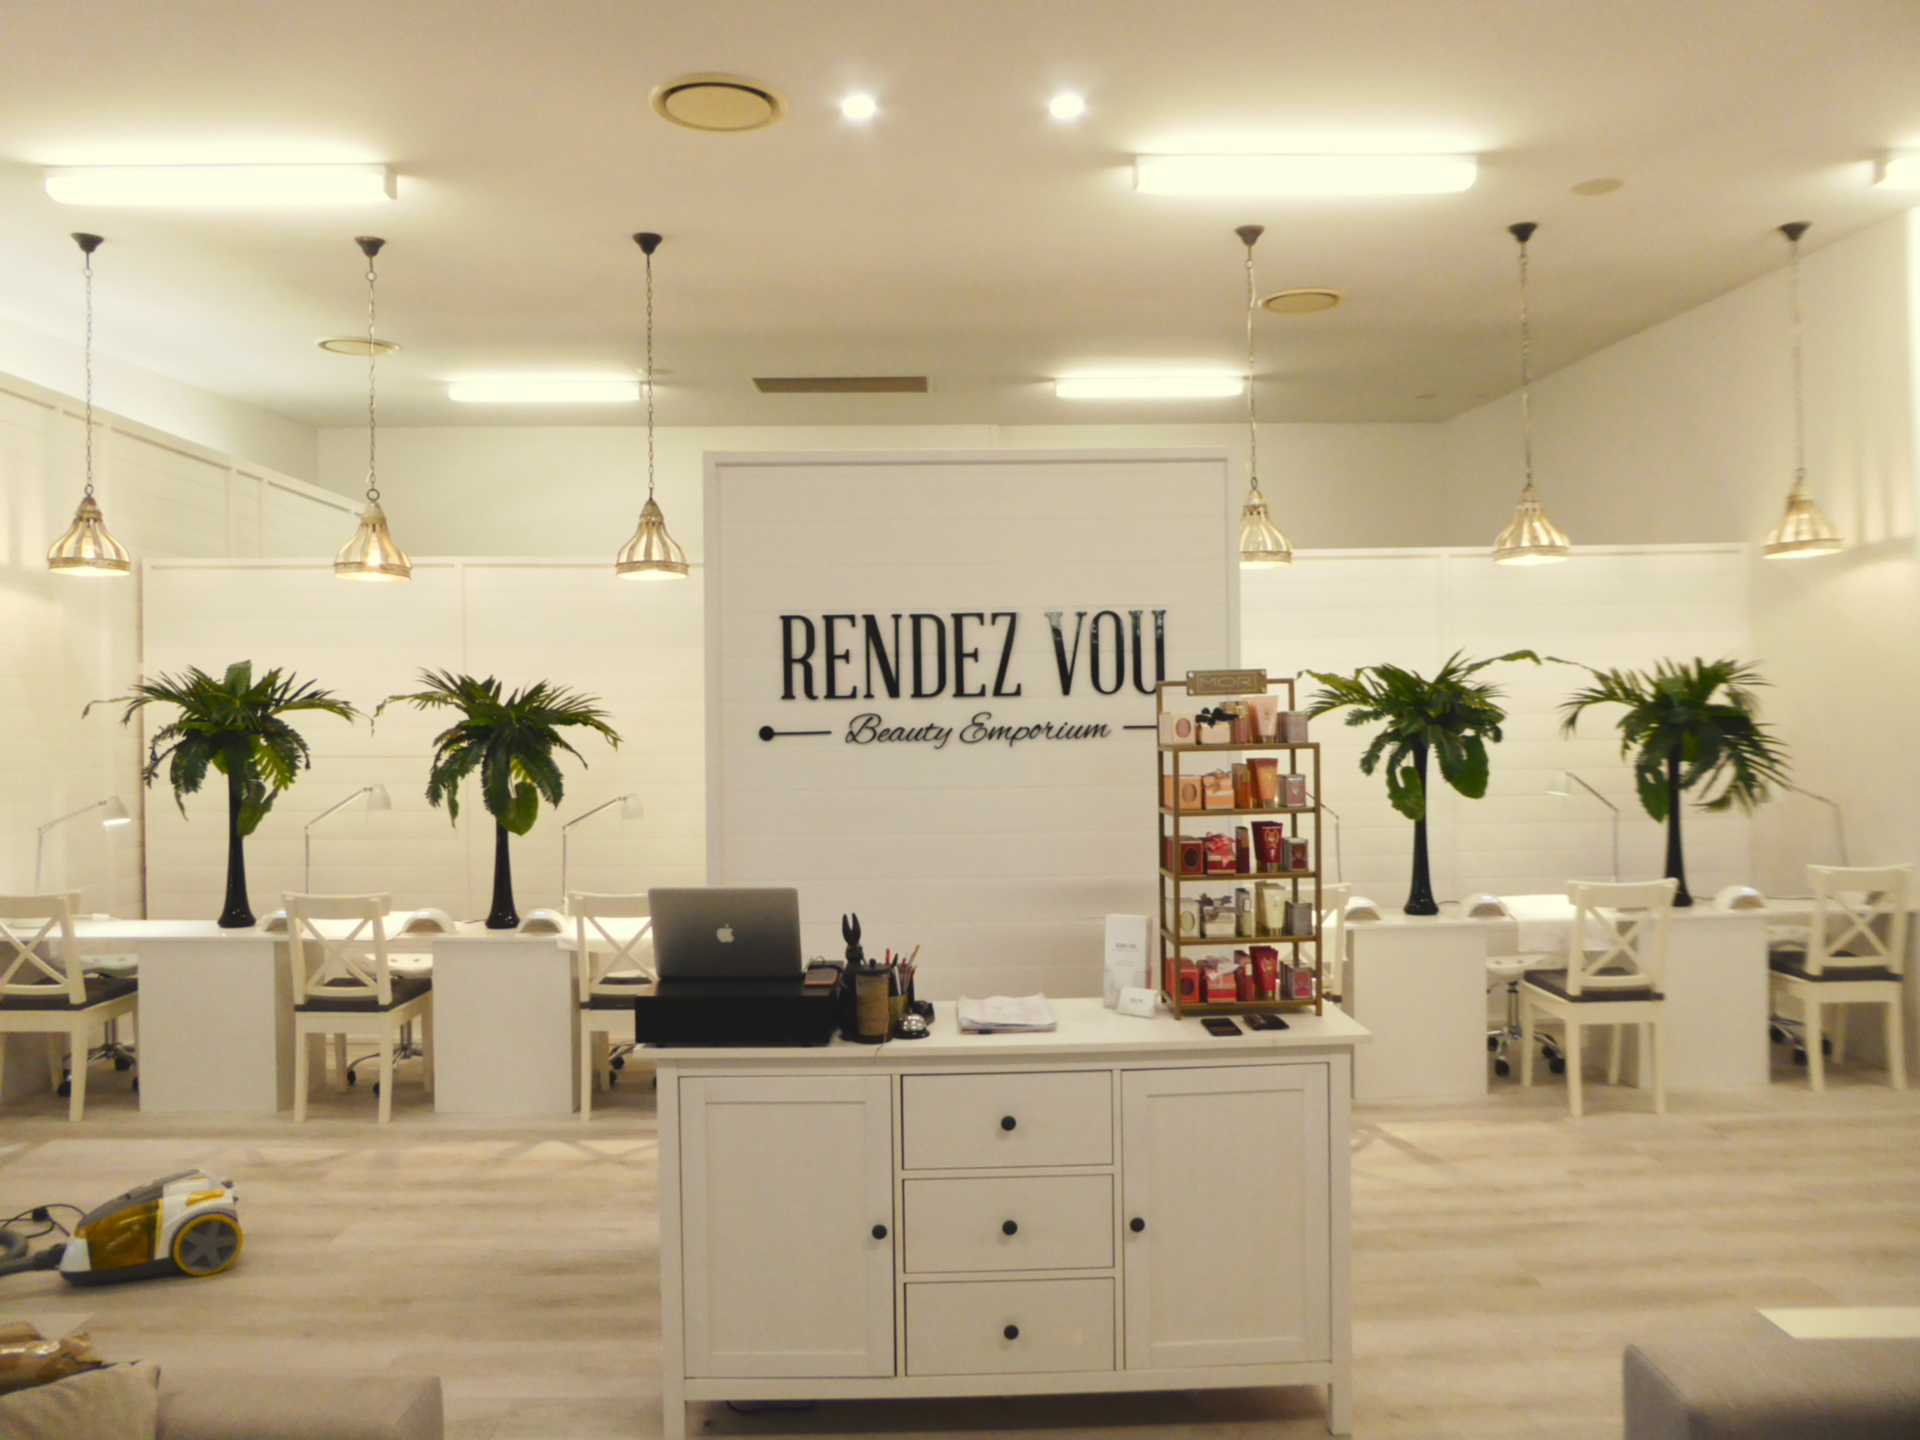 What is RendezVou Beauty Emporium